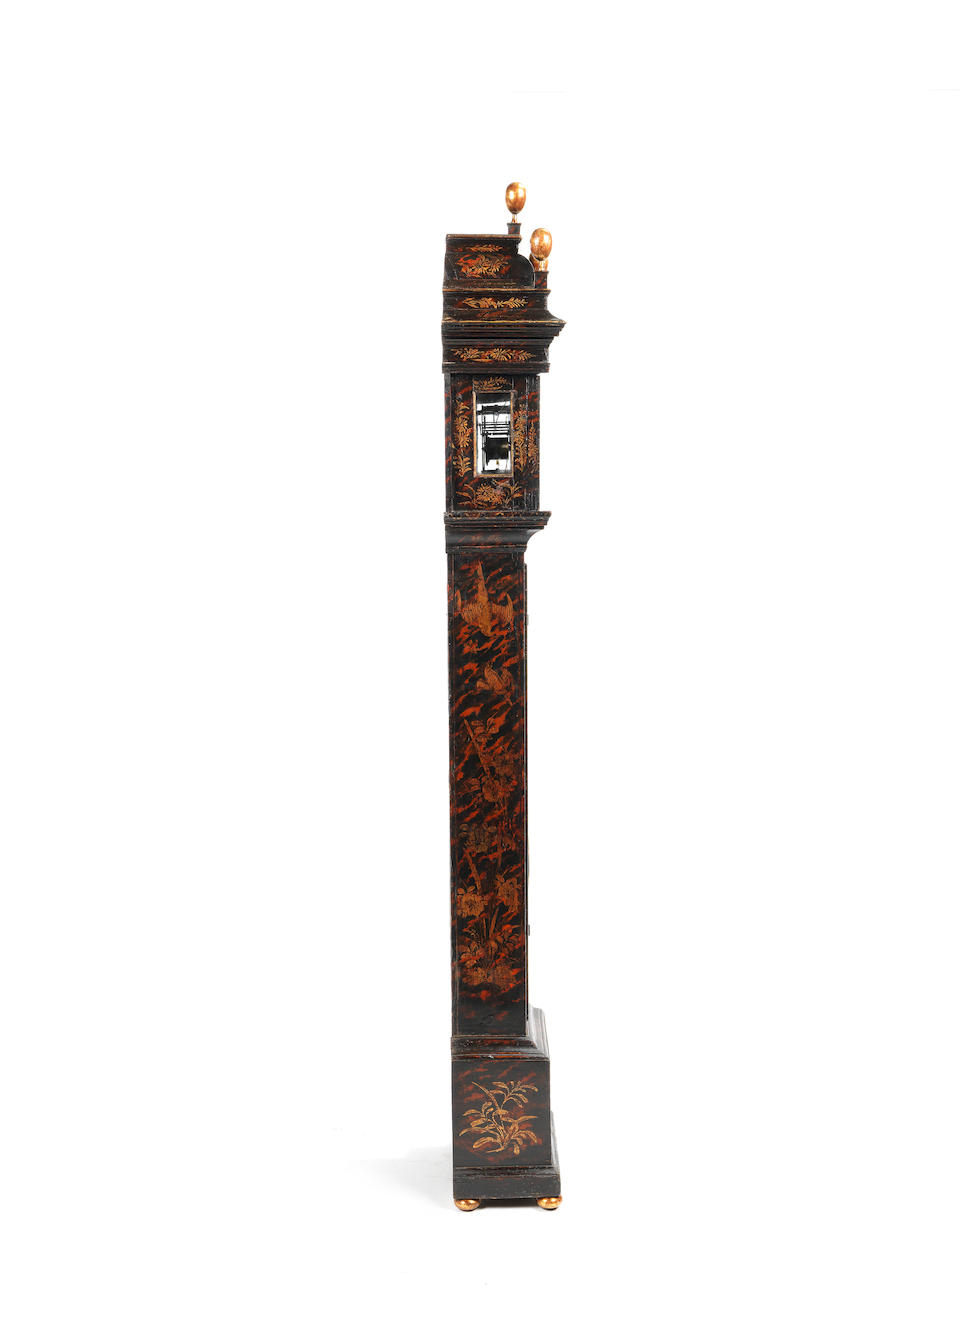 An exceptionally fine and rare early 18th century faux-tortoiseshell and Chinoiserie decorated miniature longcase clock Manley, Norwich